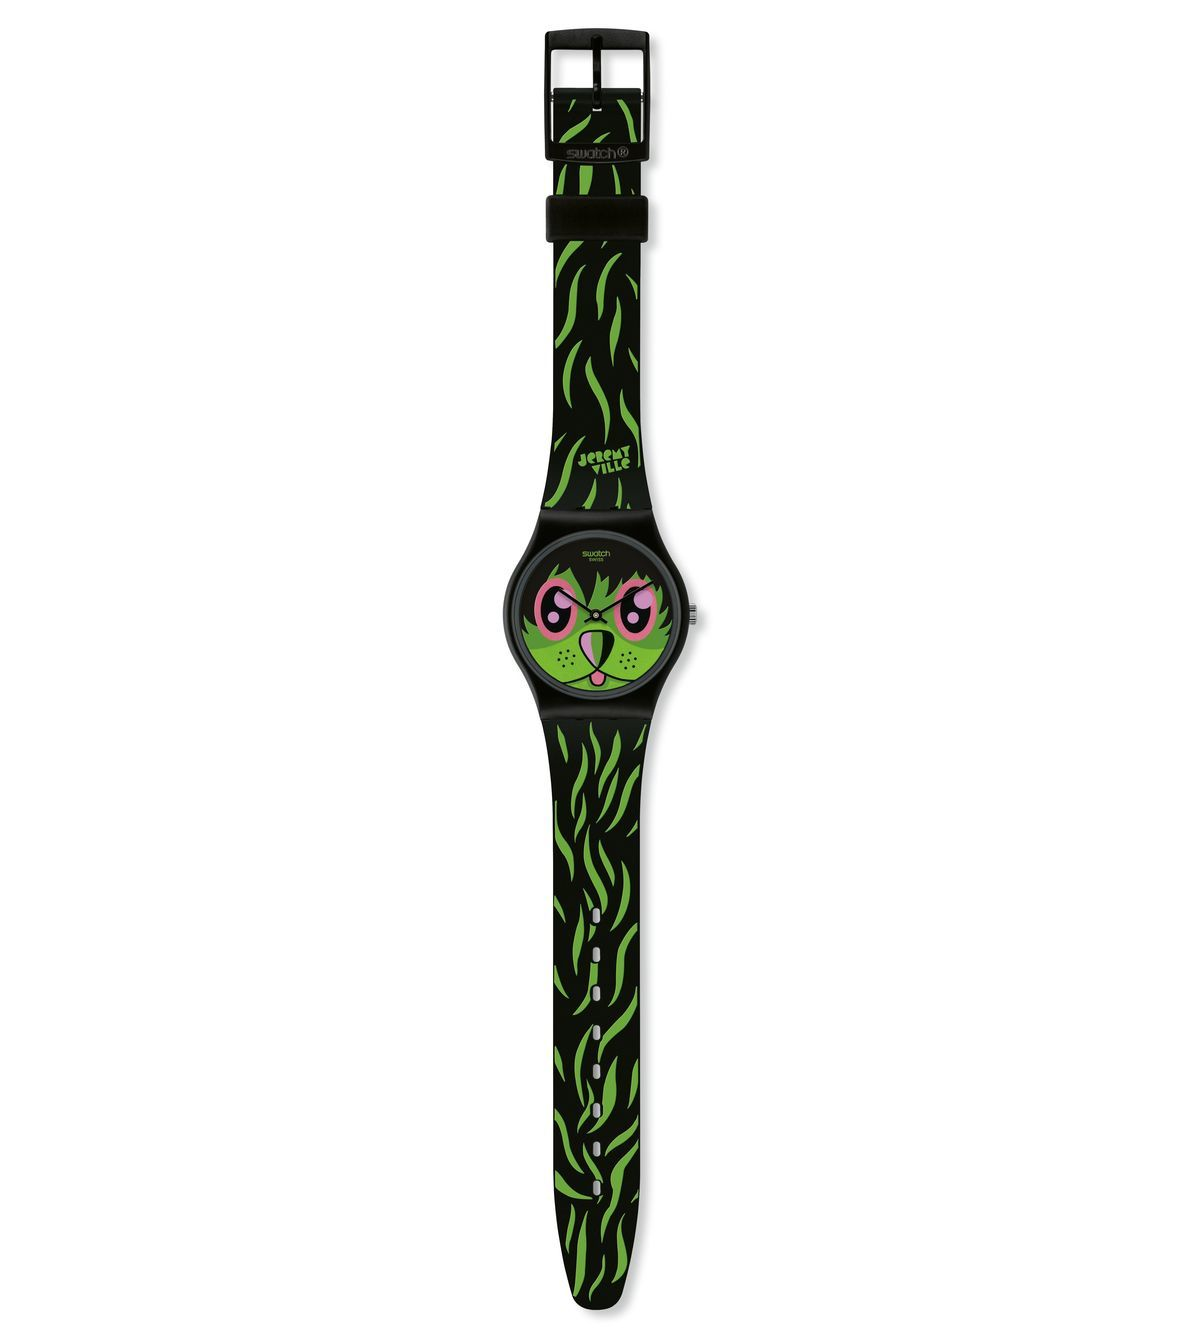 SWATCH-THE SO FAR AWAY - GB252